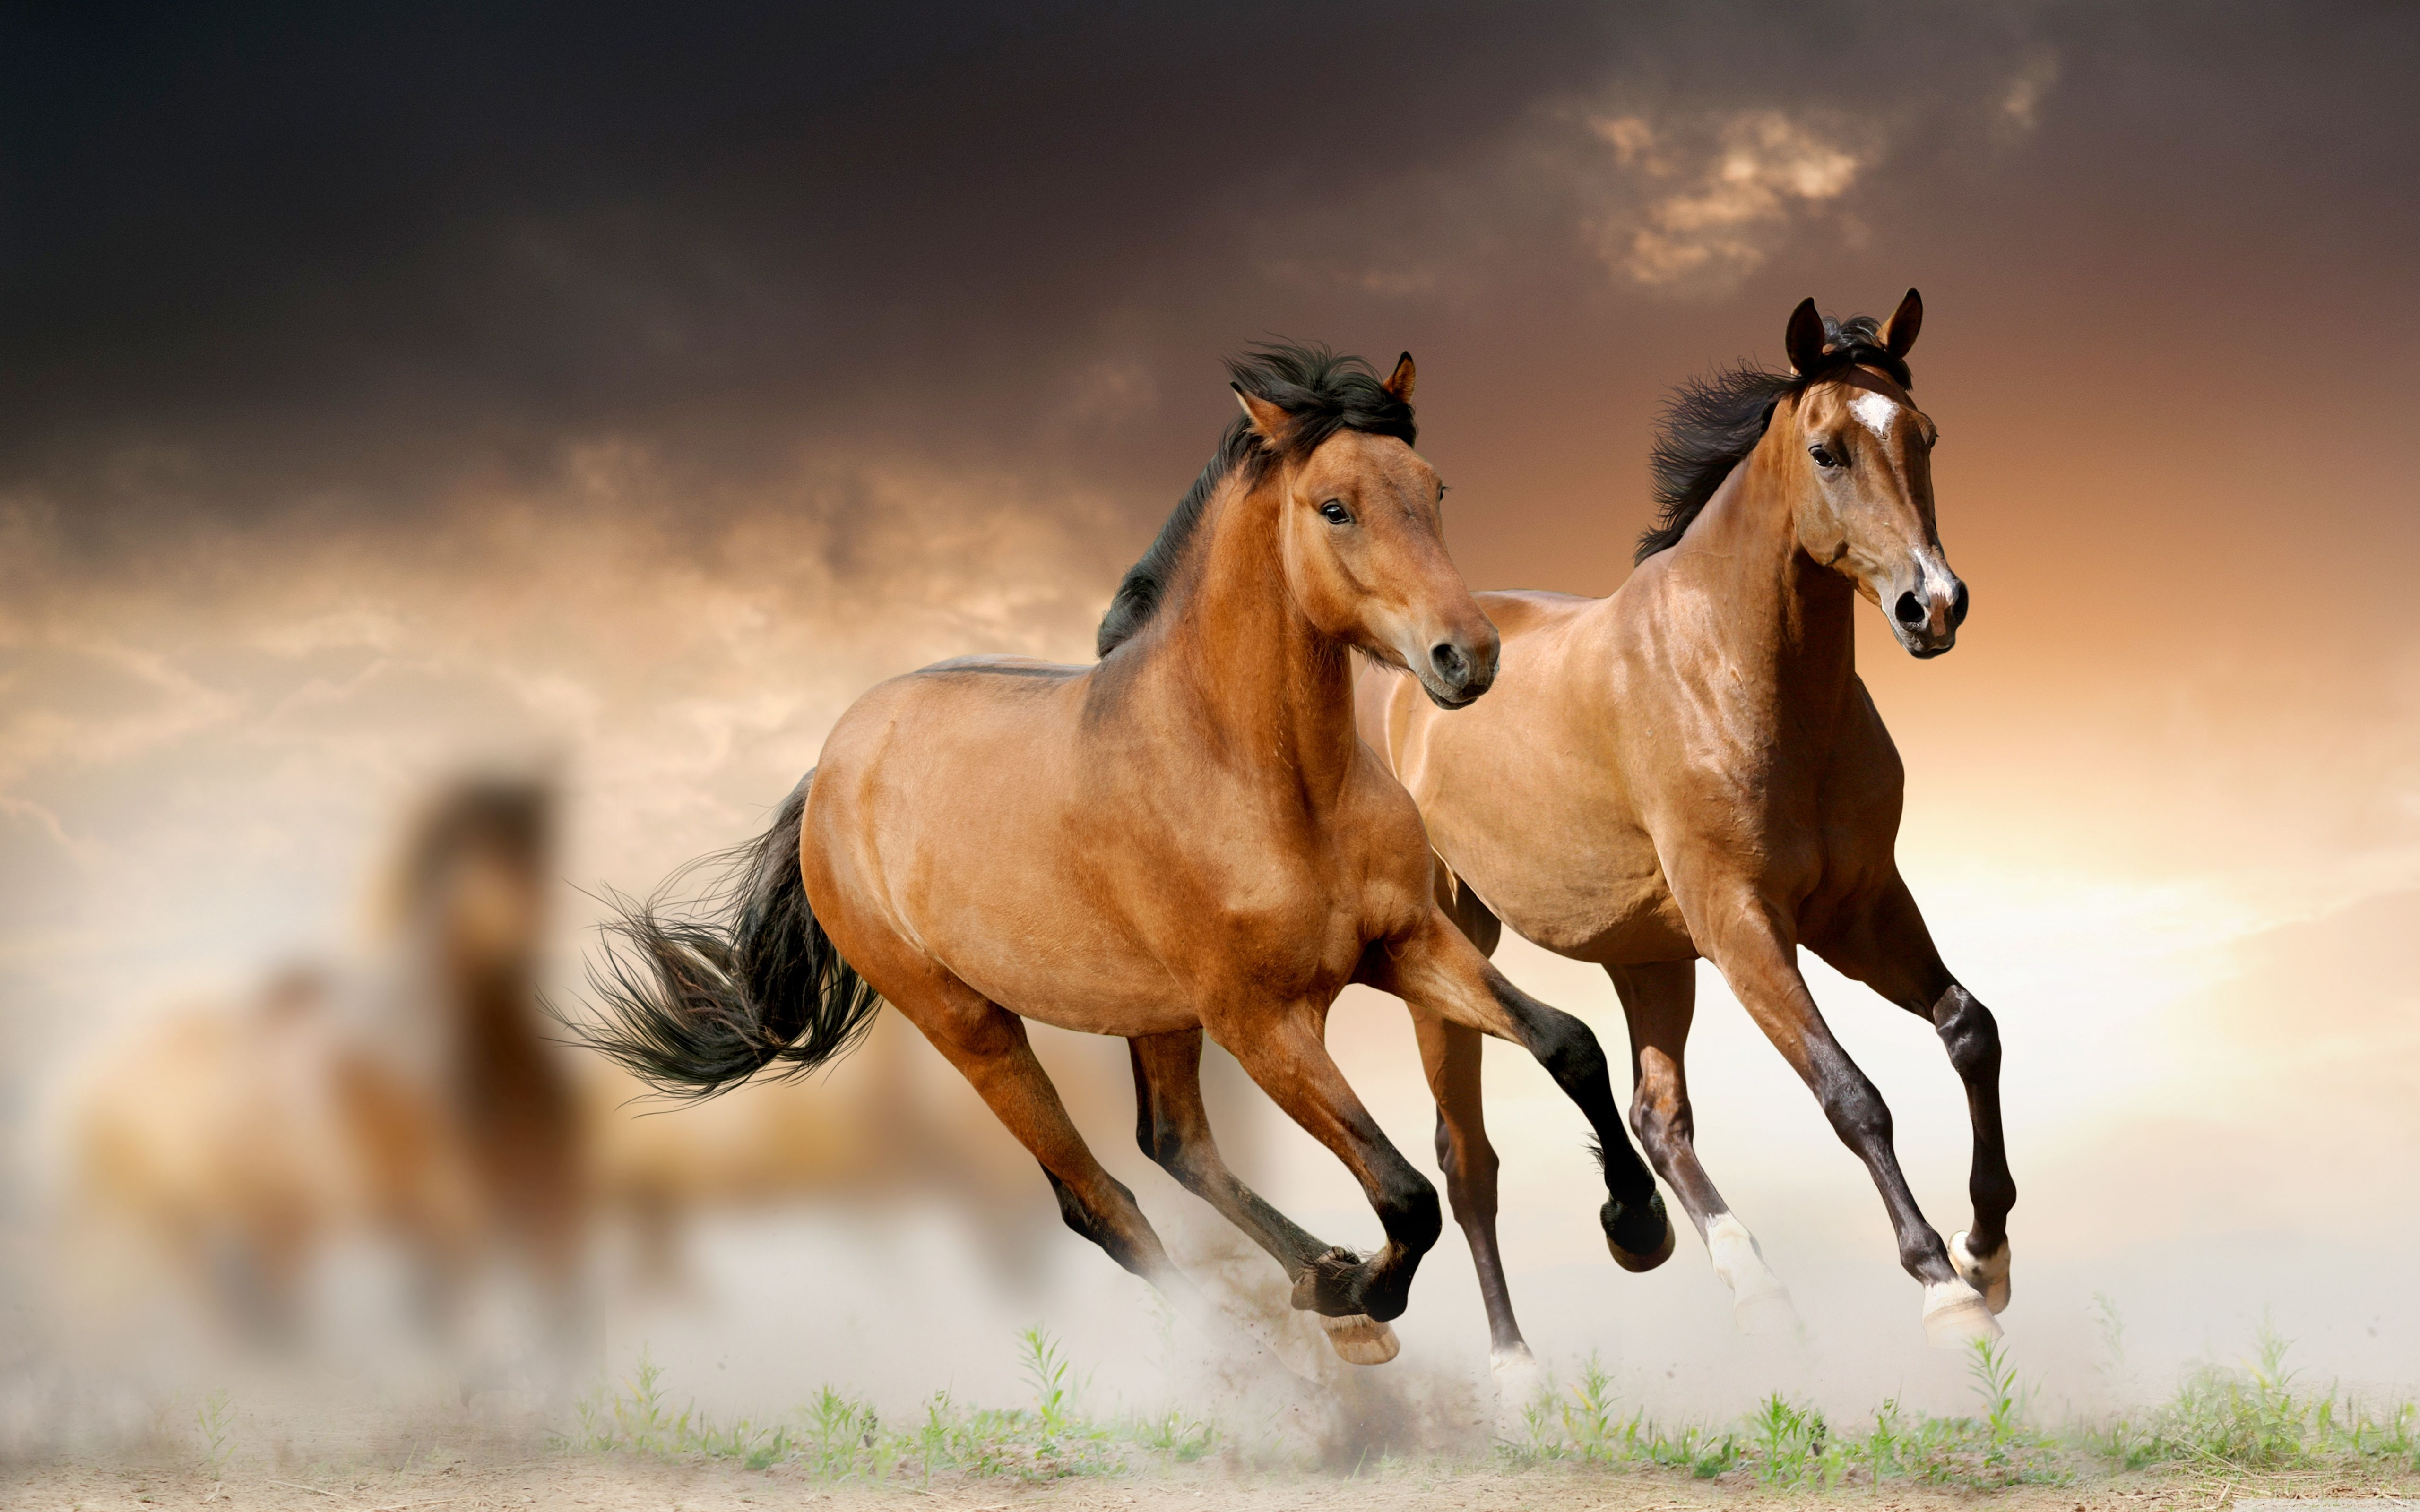 Free Wallpapers Of Horses Wallpaper Cave